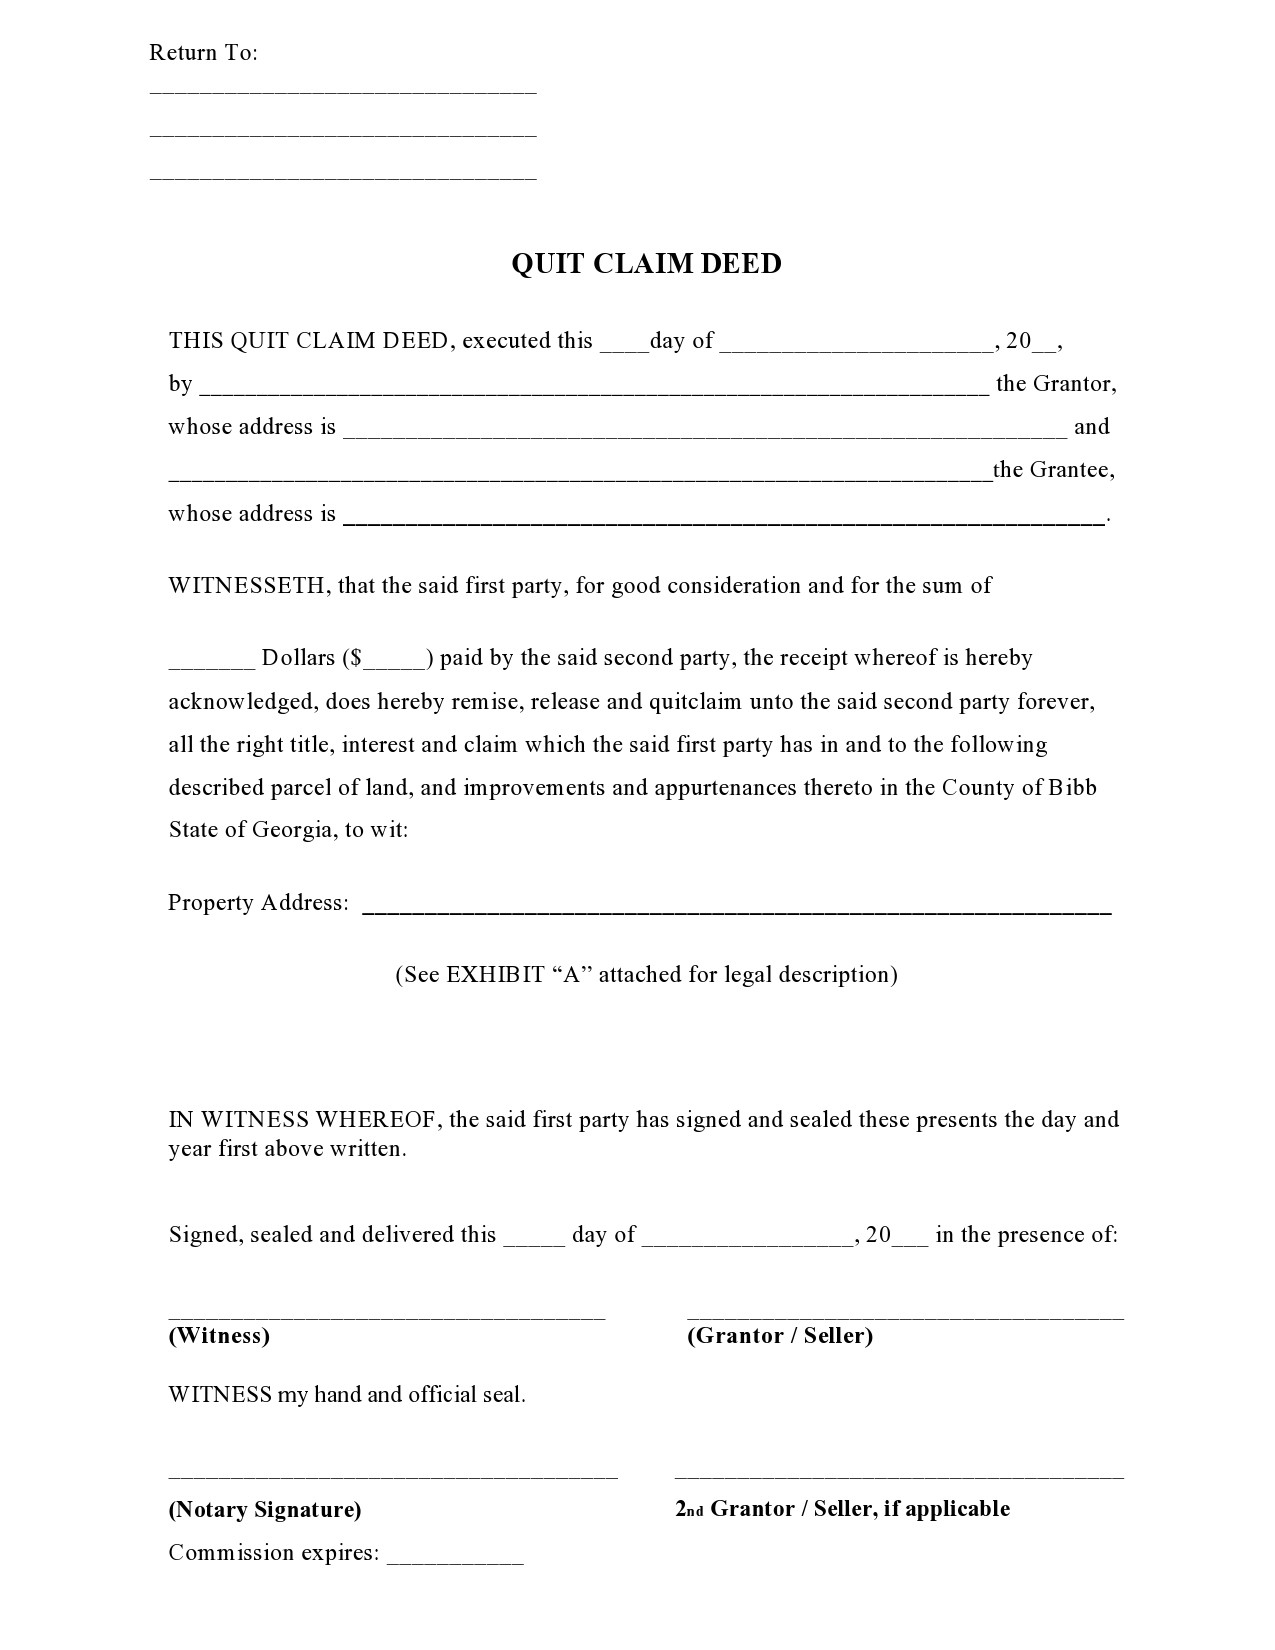 Free quit claim deed form 06